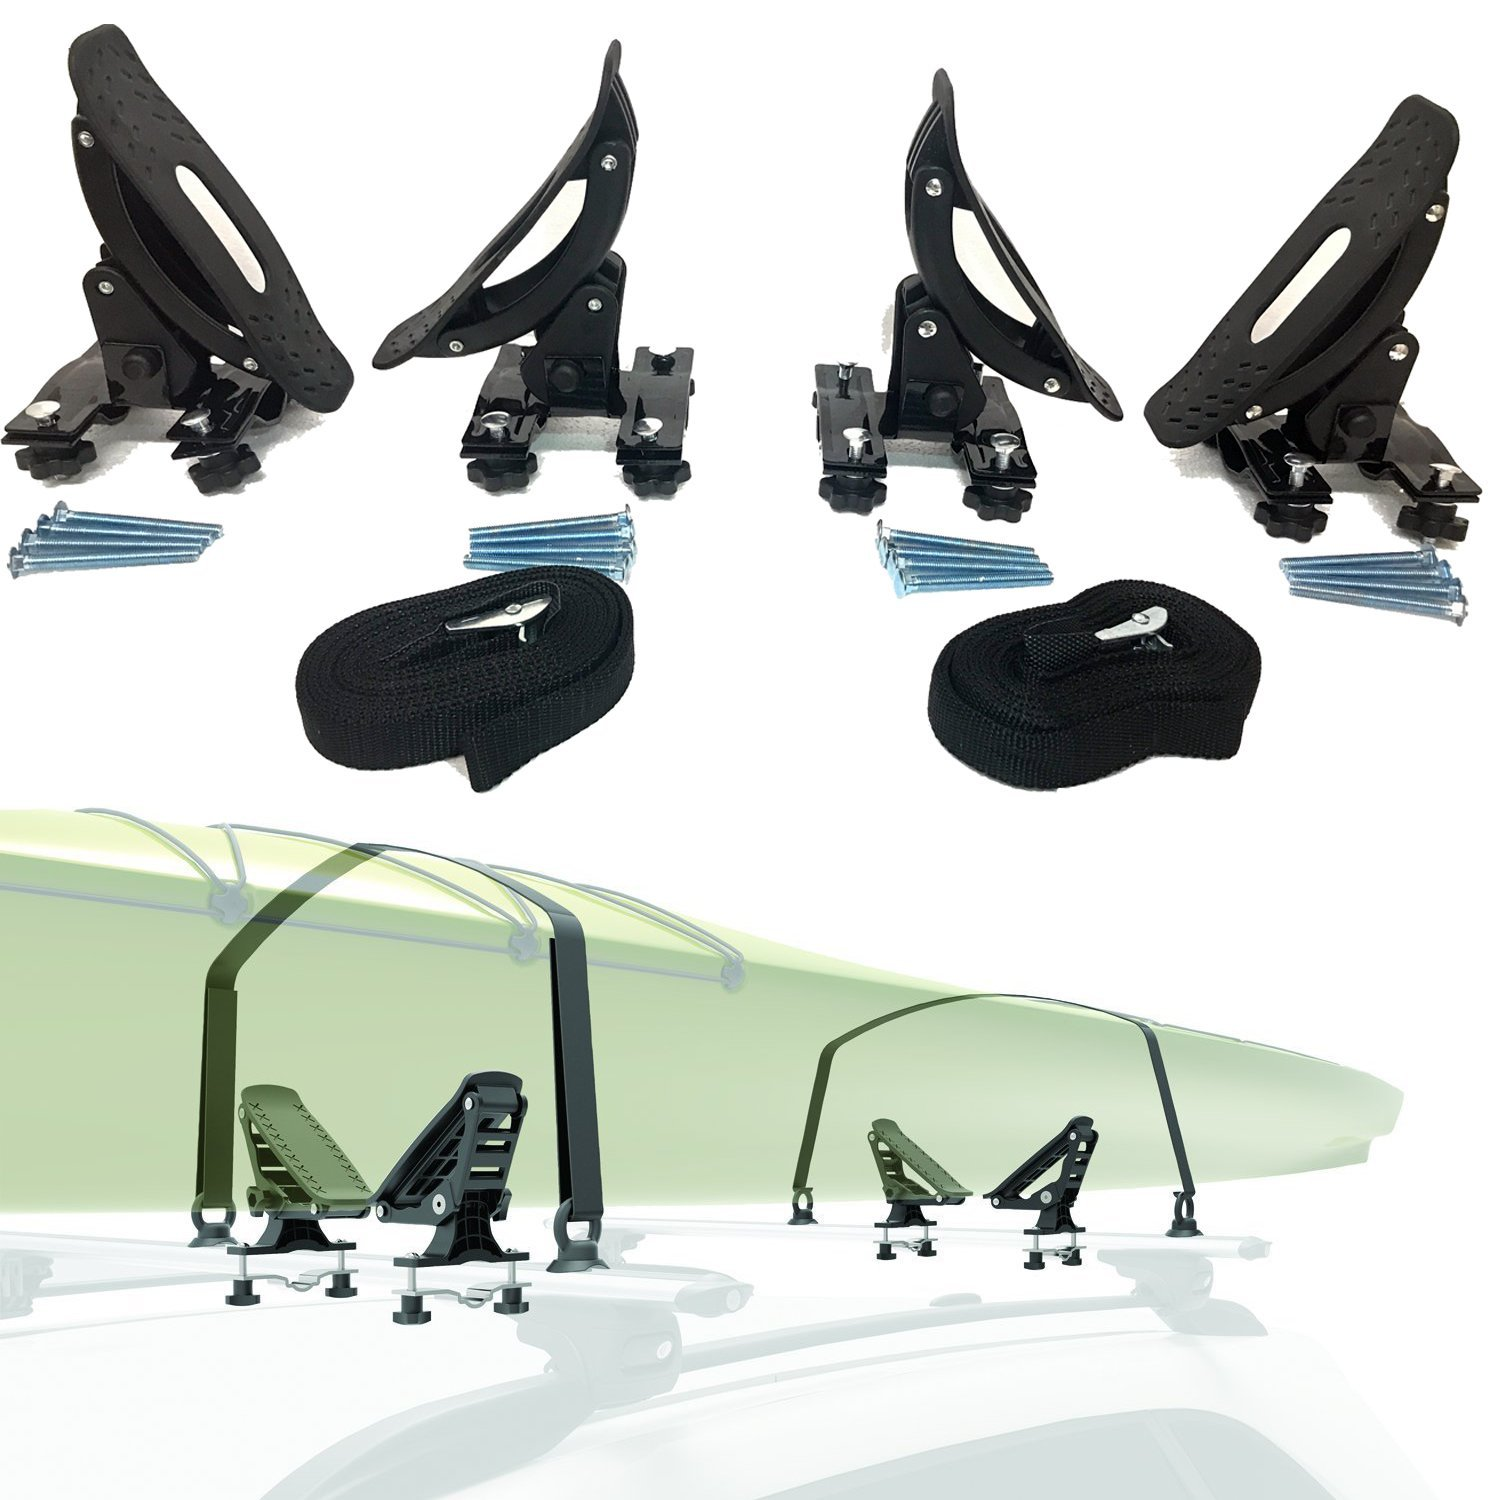 Click here to buy Egreaten Universal Saddles Kayak Carrier Canoe Boat, Surfboard Skiboard top roof Mounted... by China.